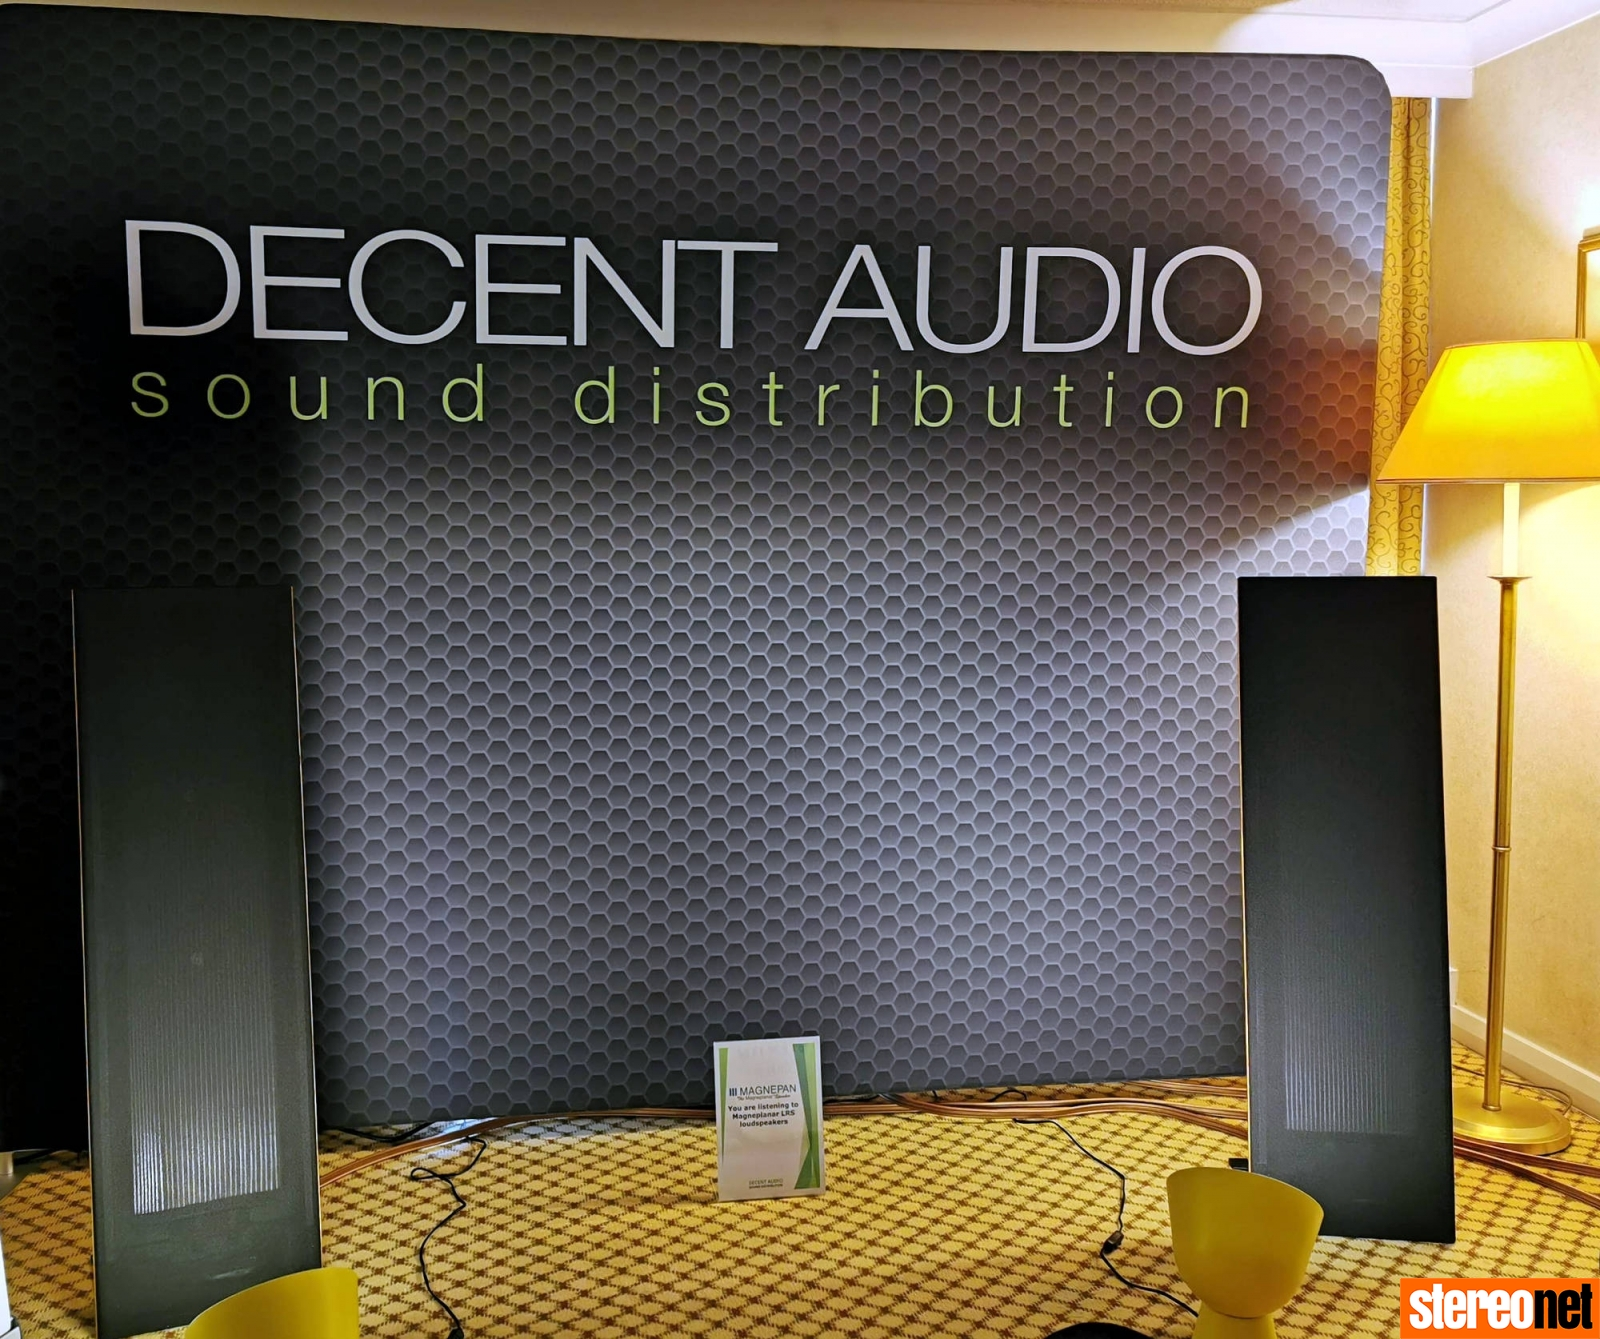 Decent Audio Magnepan Bristol hifi show 2020 report